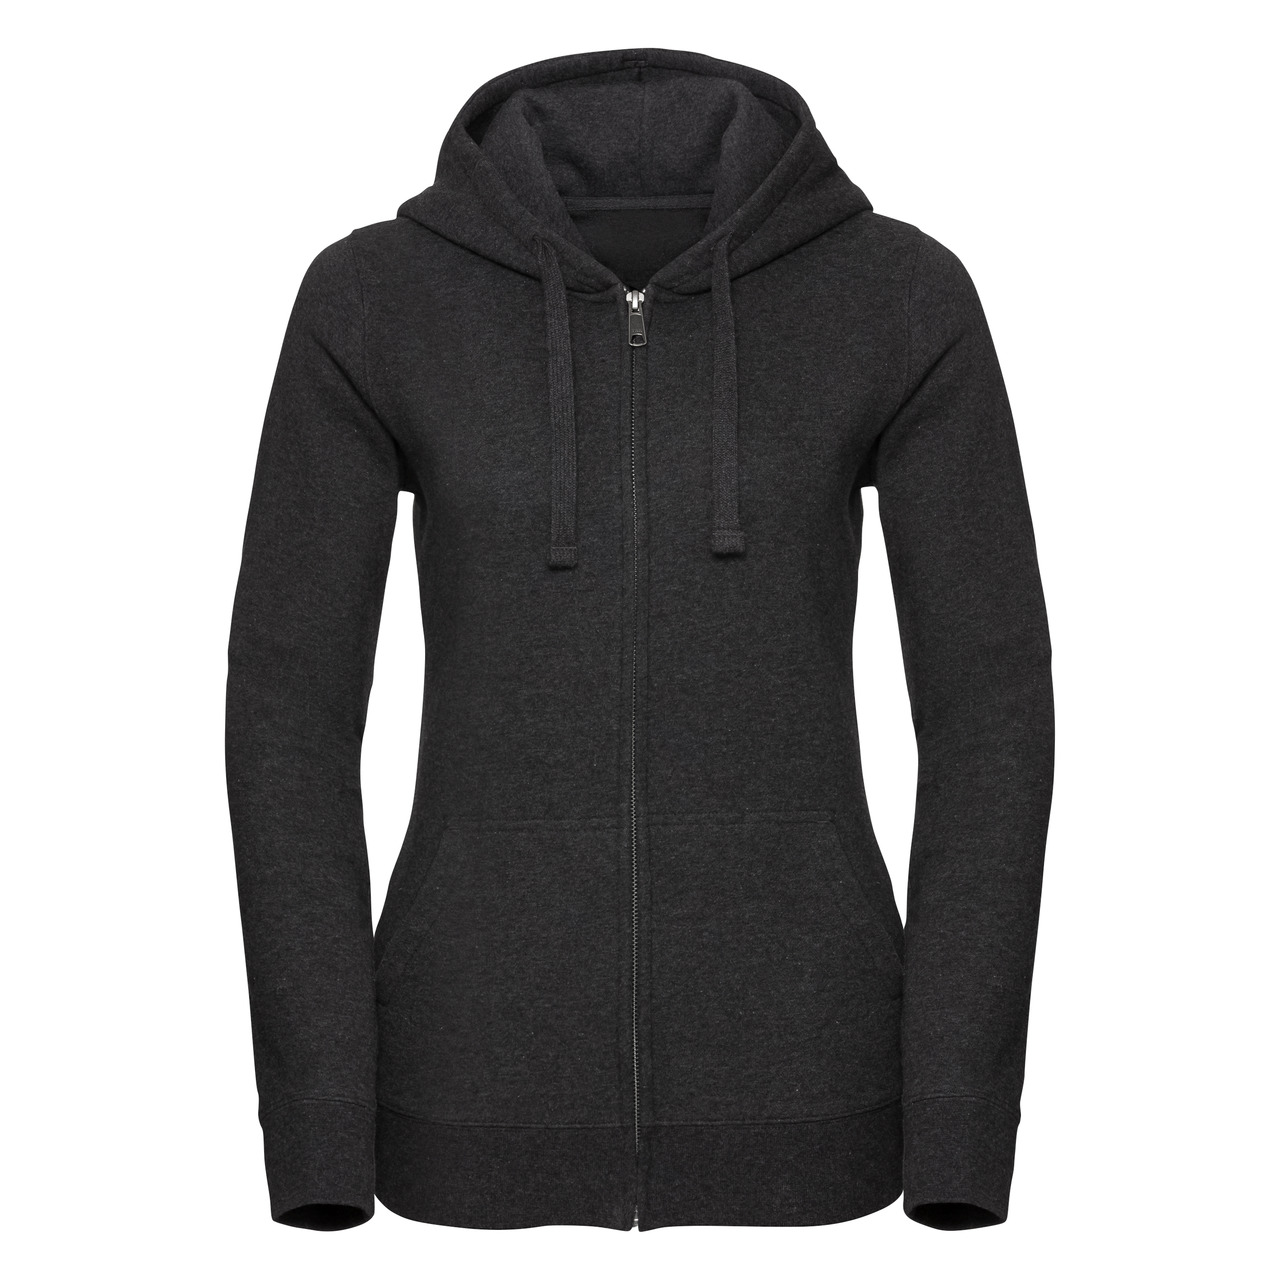 Damska bluza Authentic Melange Zipped Hooded Sweat R263F 75% bawełny ring-spun; 21% poliestru;4% wiskozy 280g